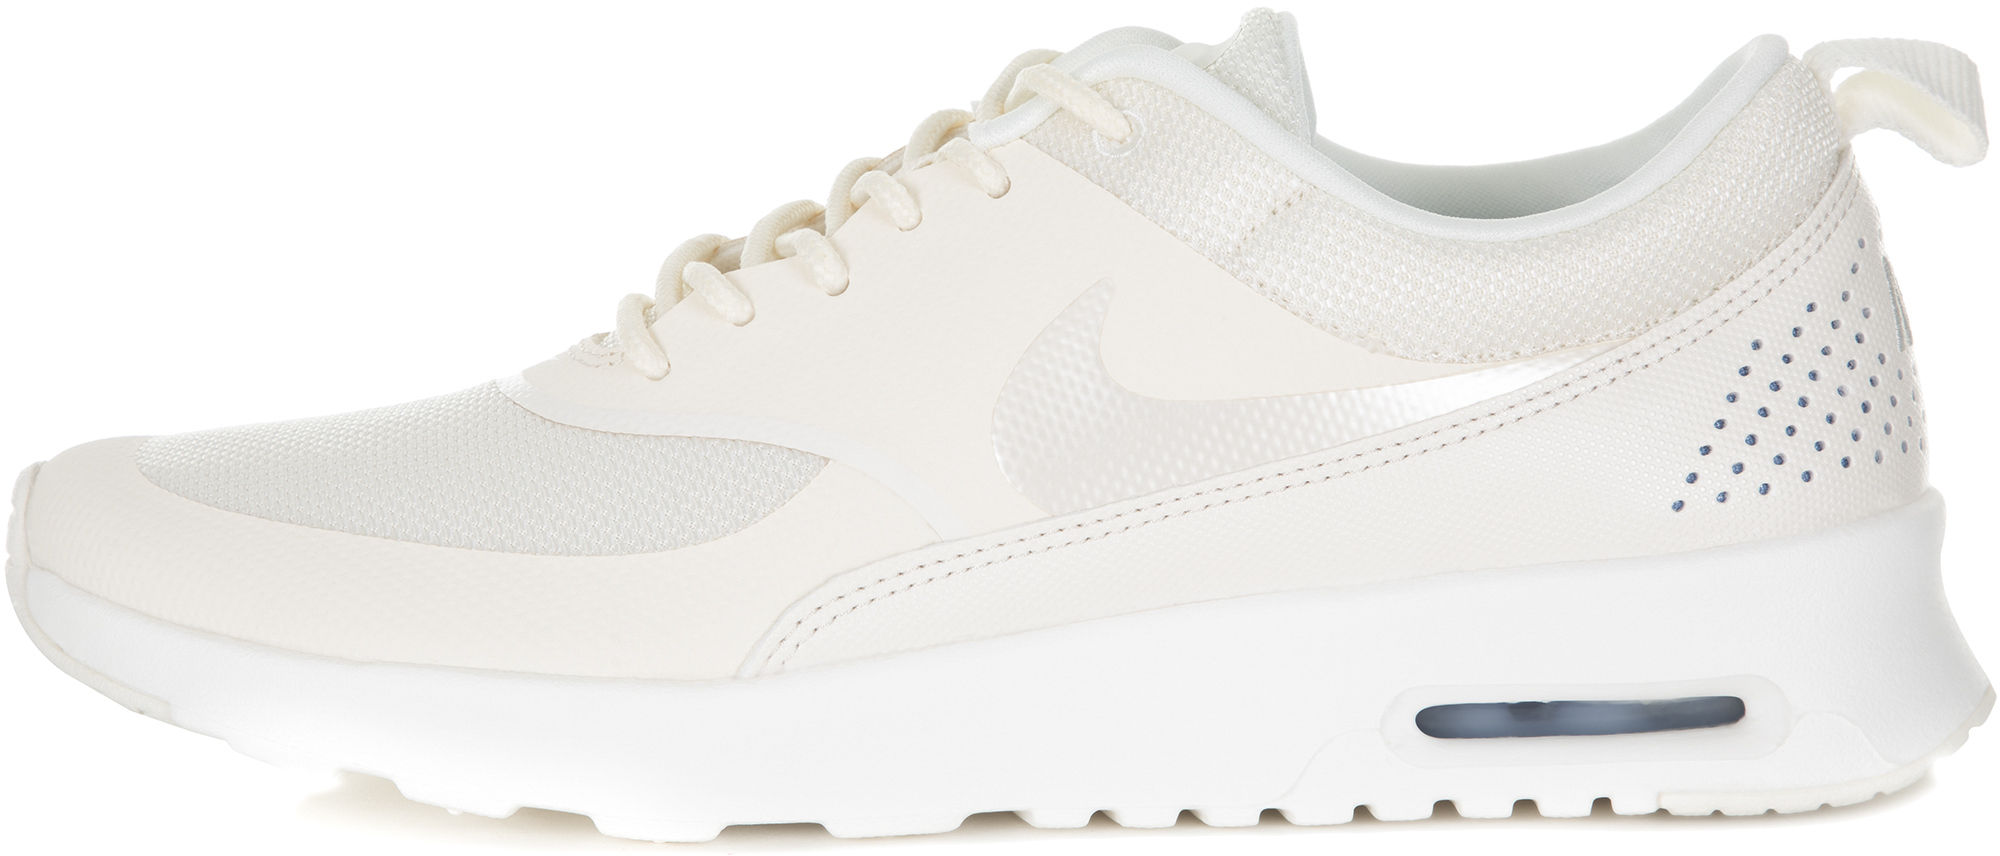 Nike Кроссовки женские Nike Air Max Thea, размер 38